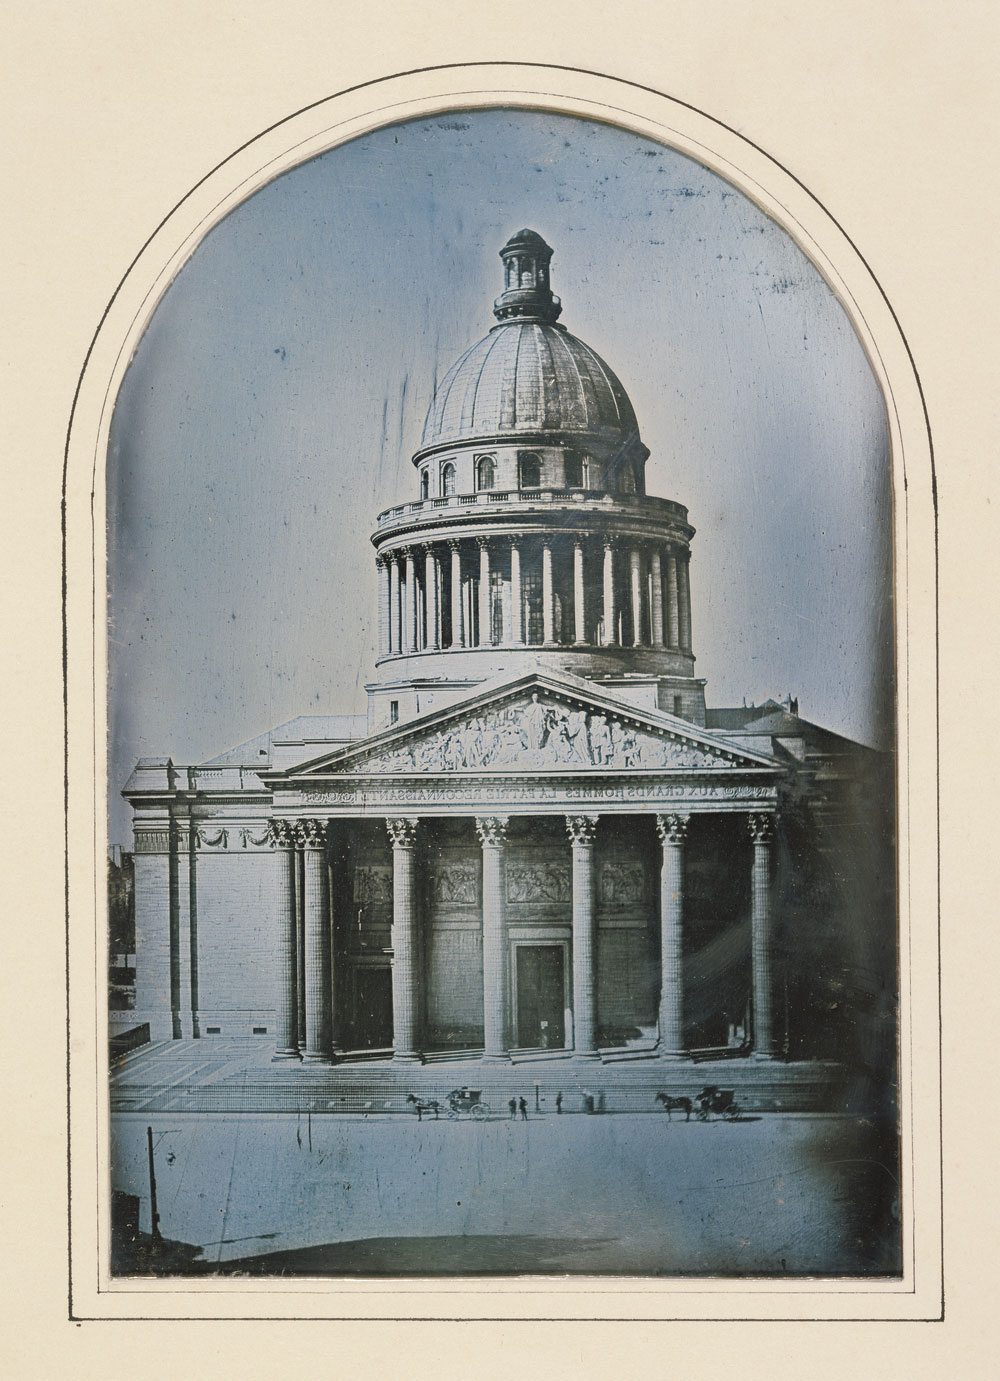 Fotó: Alphonse-Louis Poitevin (French, 1819-1882)<br />The Pantheon, Paris<br />1842<br />Daguerreotype<br />1/2 plate<br />Image: 15.1 x 10.2 cm (5 15/16 x 4 in.)<br />Mat: 21.5 x 15.6 cm (8 7/16 x 6 1/8 in.)<br />Object (whole): 27.9 x 21.9 cm (11 x 8 5/8 in.)<br />The J. Paul Getty Museum, Los Angeles